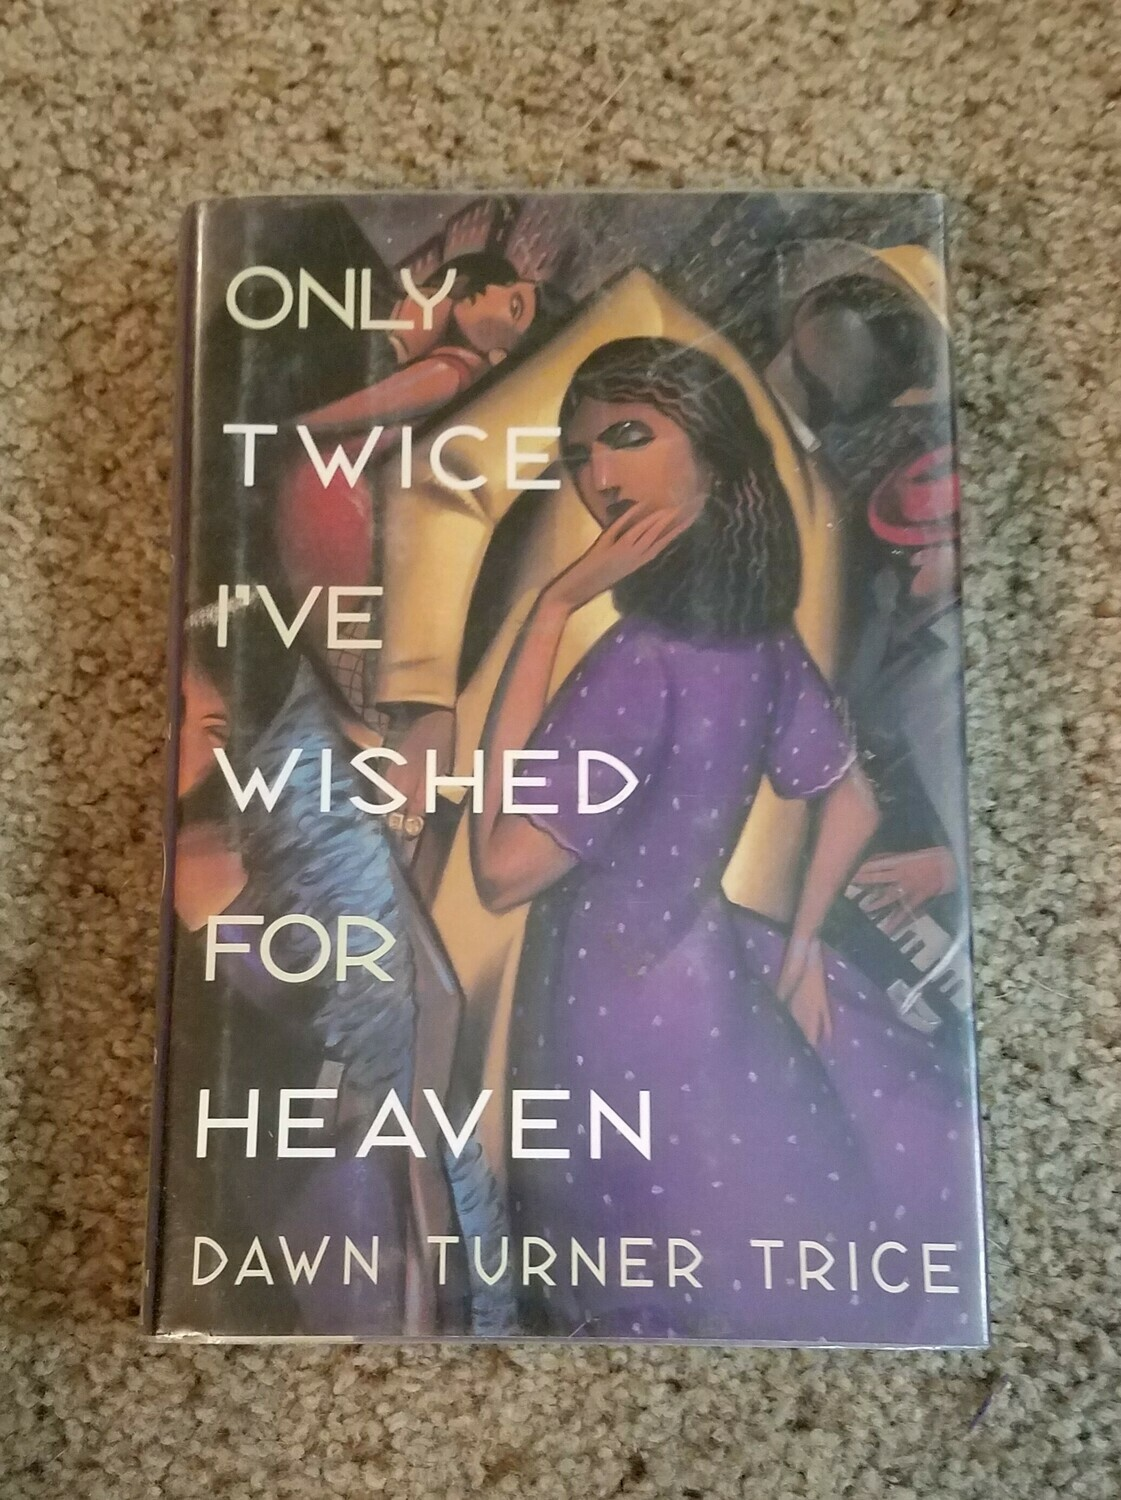 Only Twice I've Wished for Heaven by Dawn Turner Trice